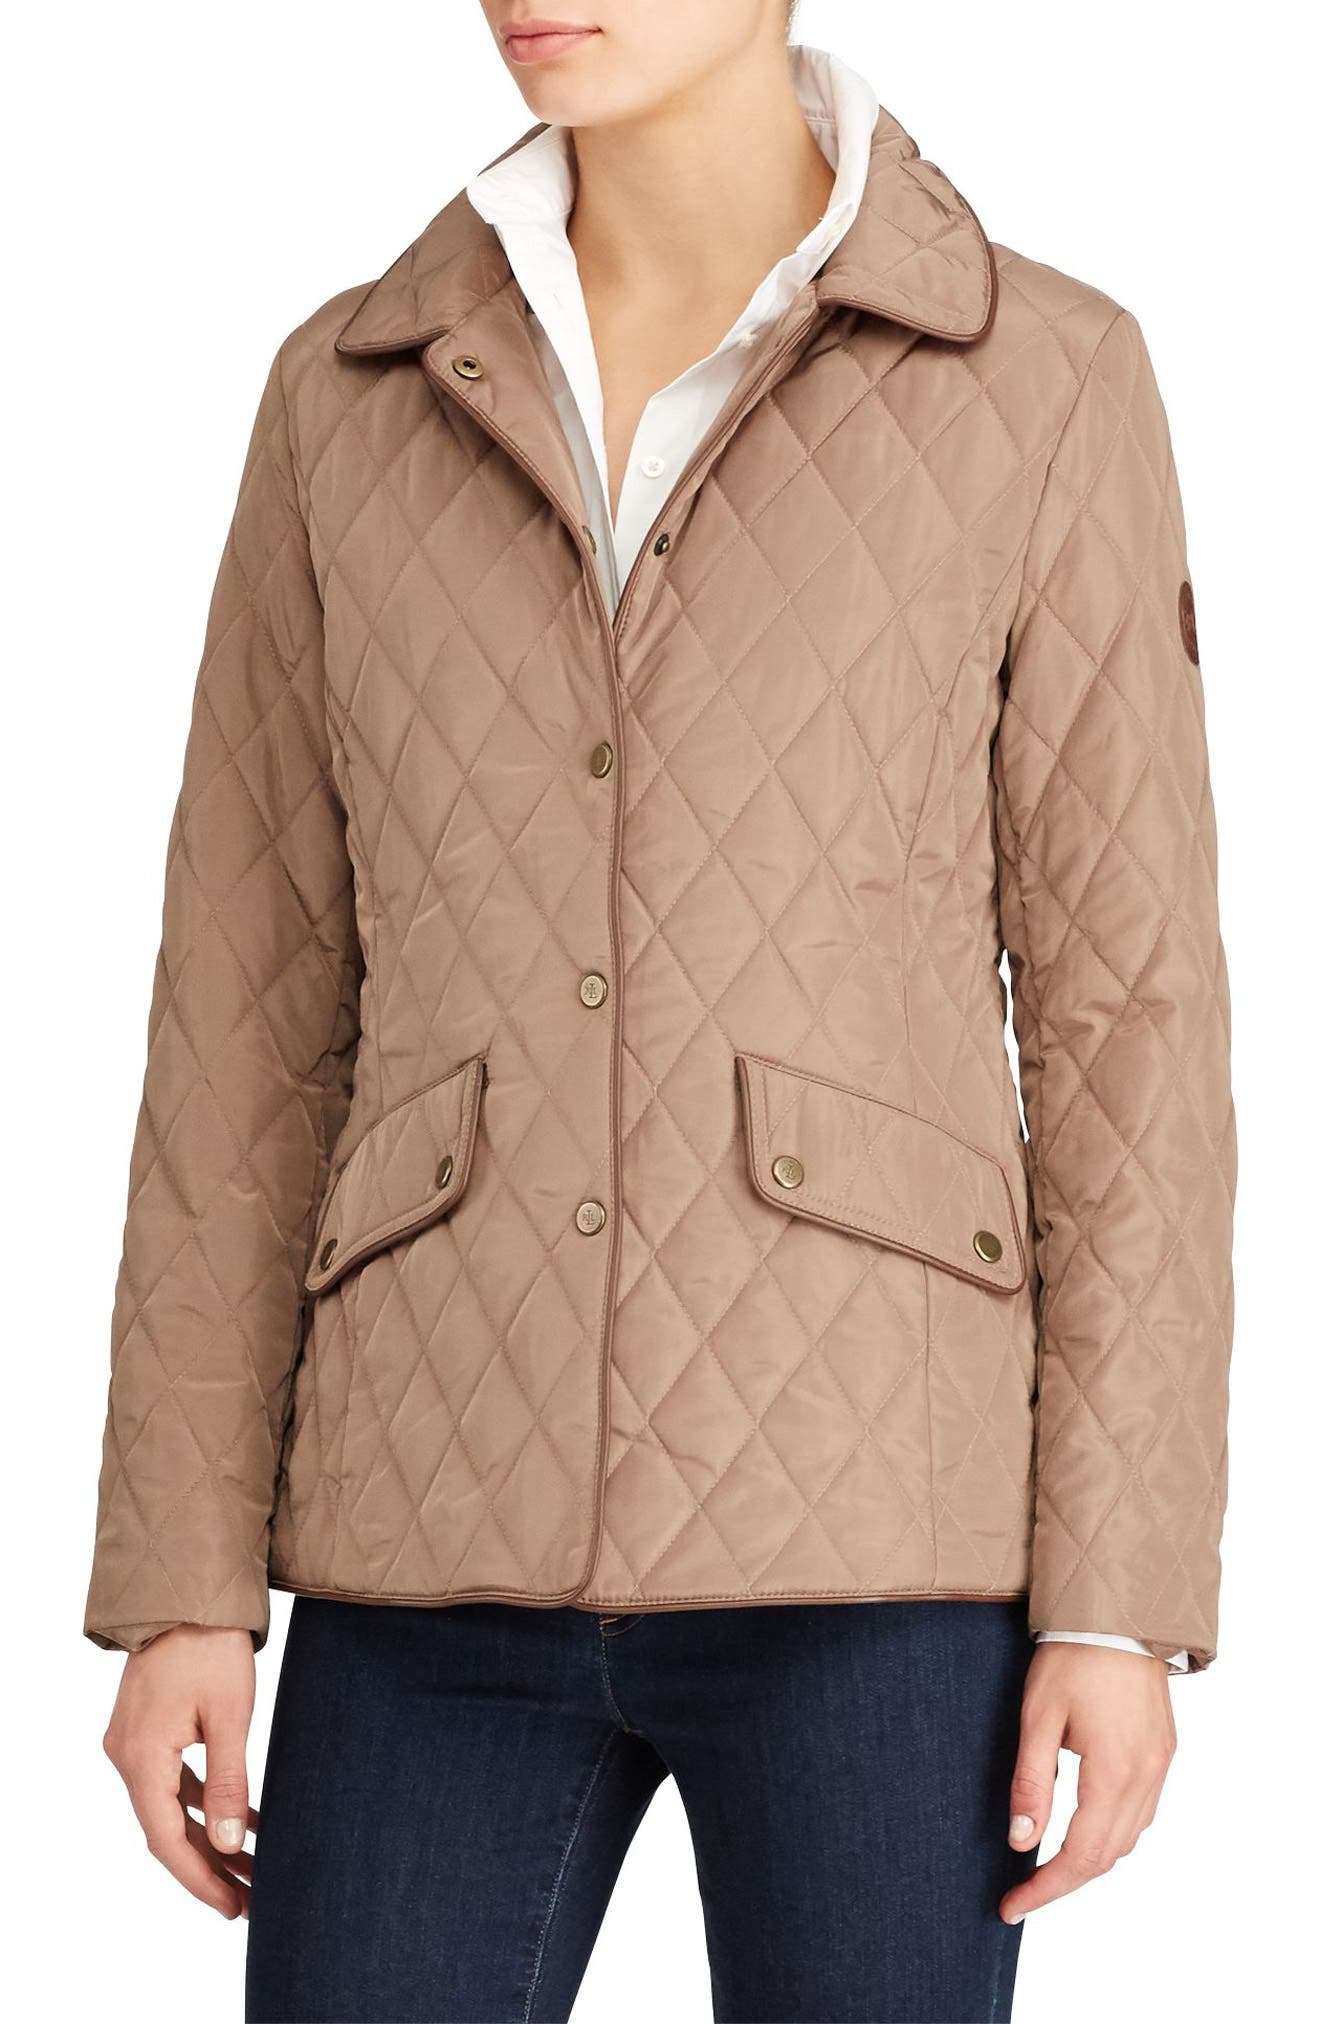 Lauren Ralph Lauren Faux Leather Trim Quilted Jacket (Regular & Petite)